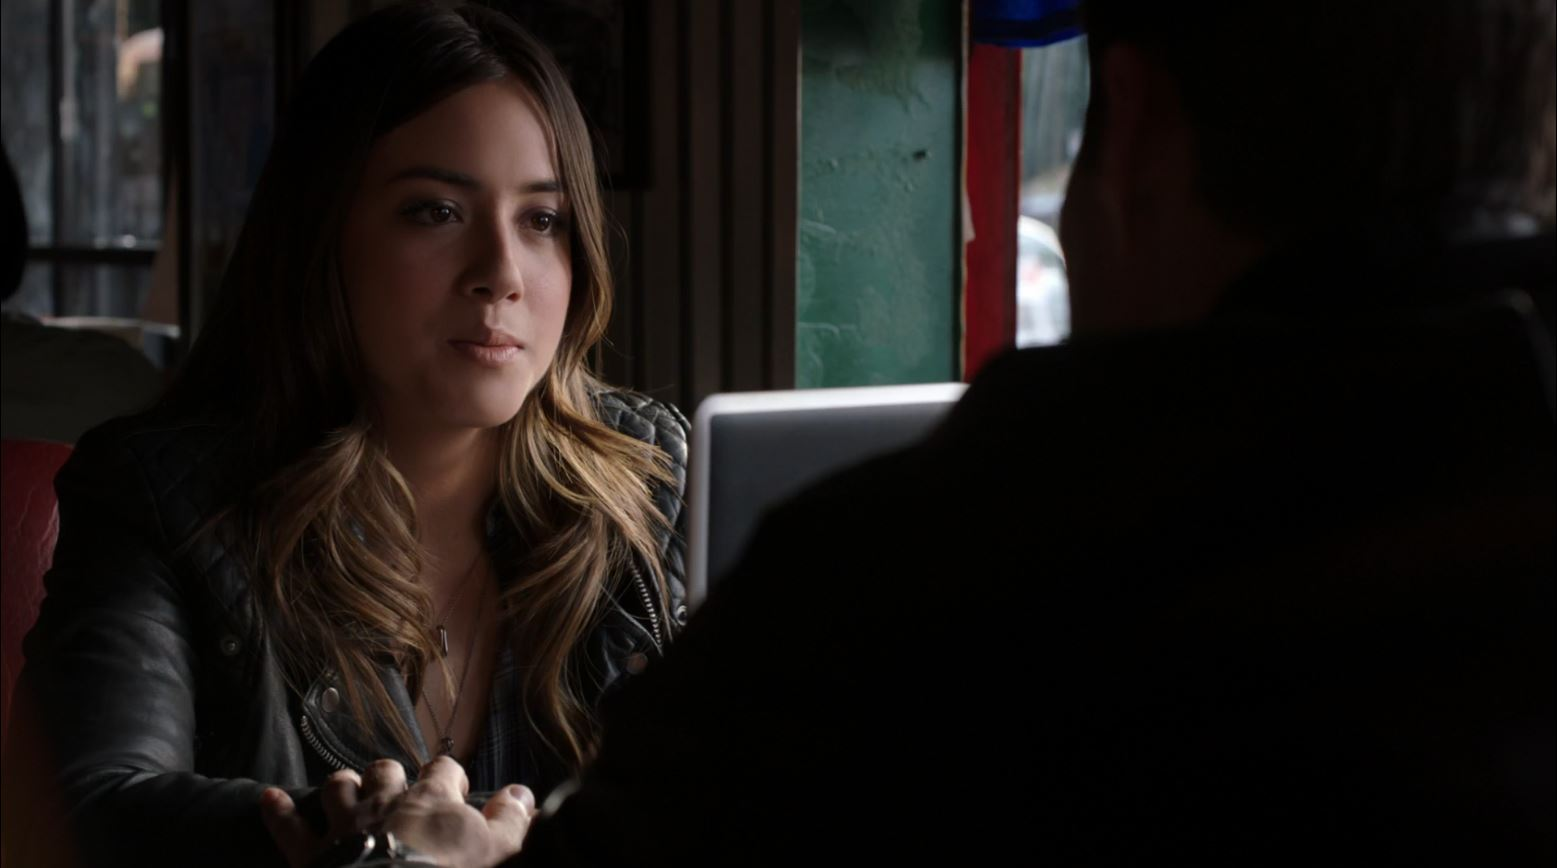 Agents of SHIELD S1Ep20 Nothing Personal - Chloe Bennett as Skye